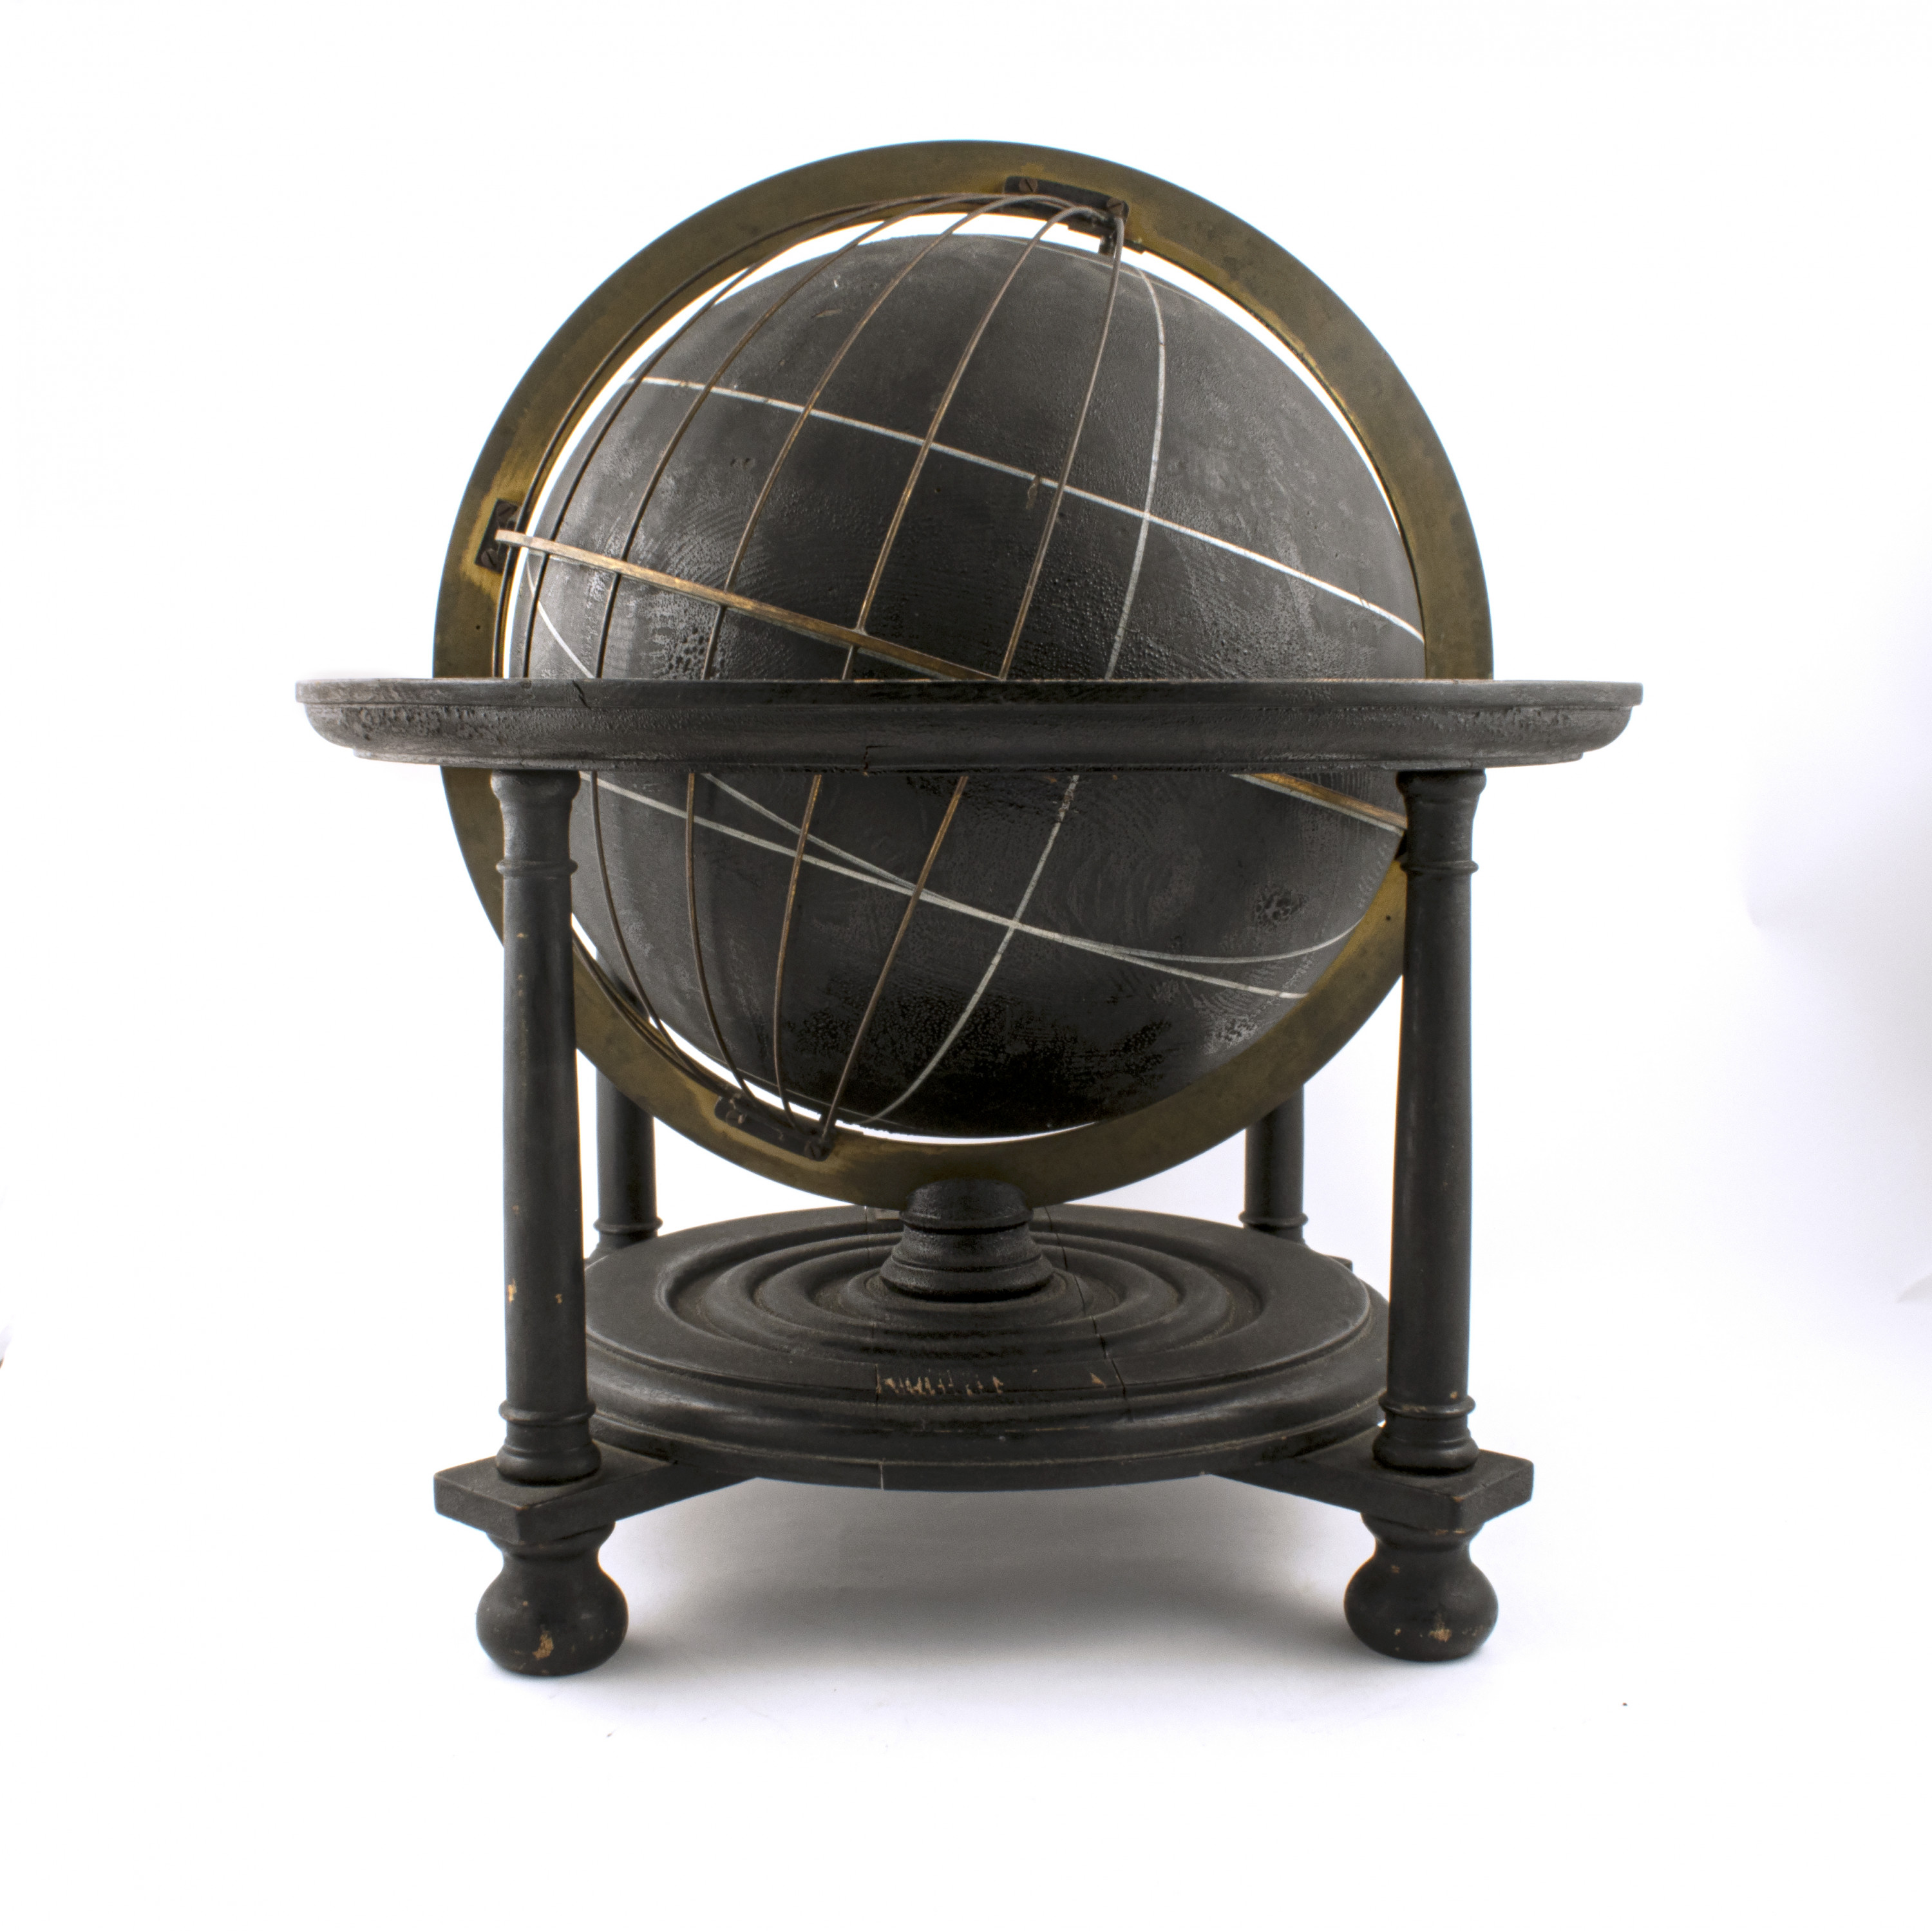 Celestial globe. Sweden early 19th century